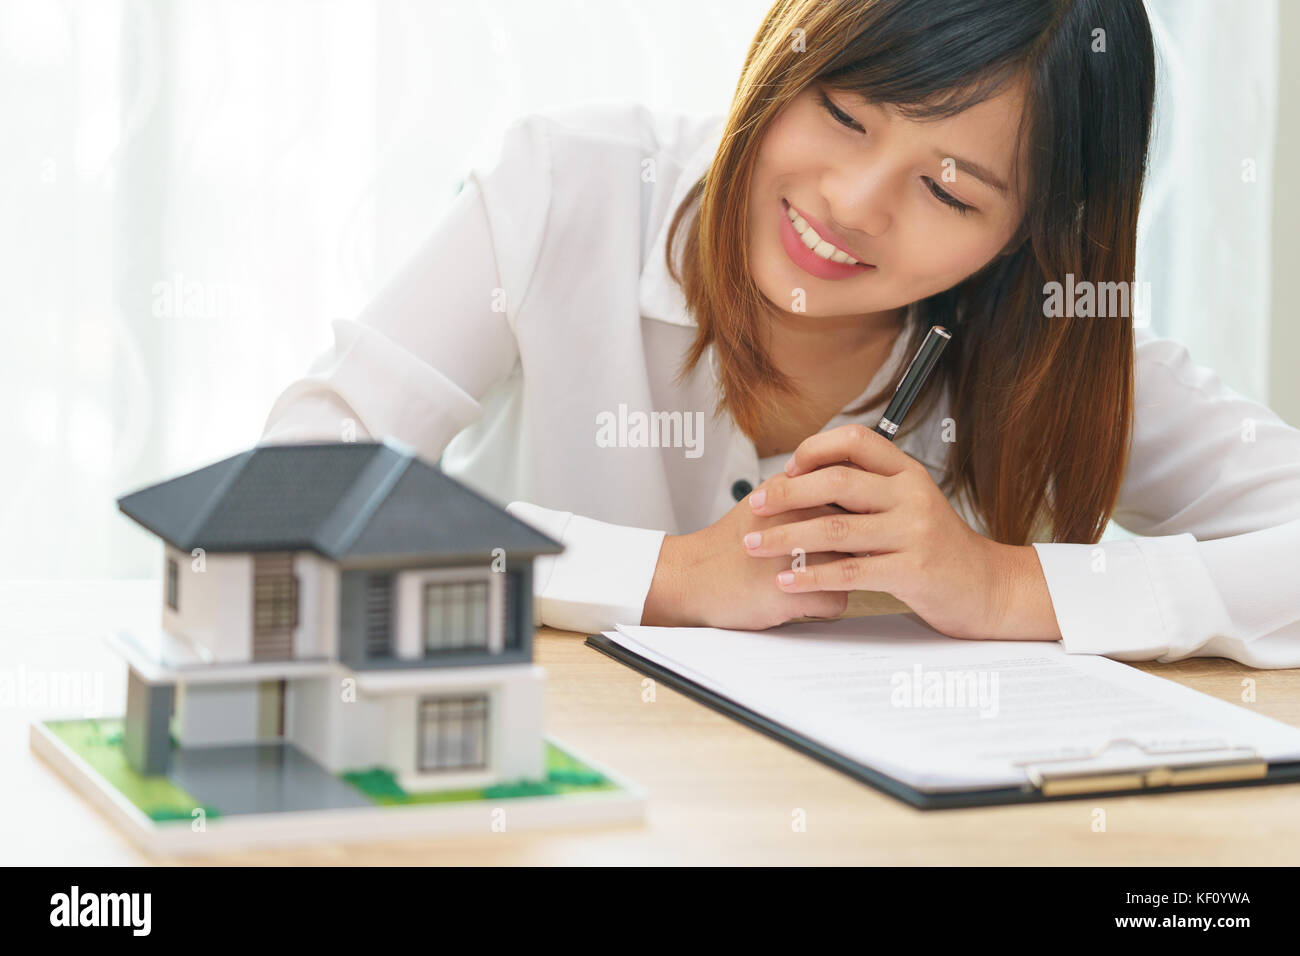 Smile woman looking at home and getting ready to sign contract for investment - satisfy in home - Stock Image